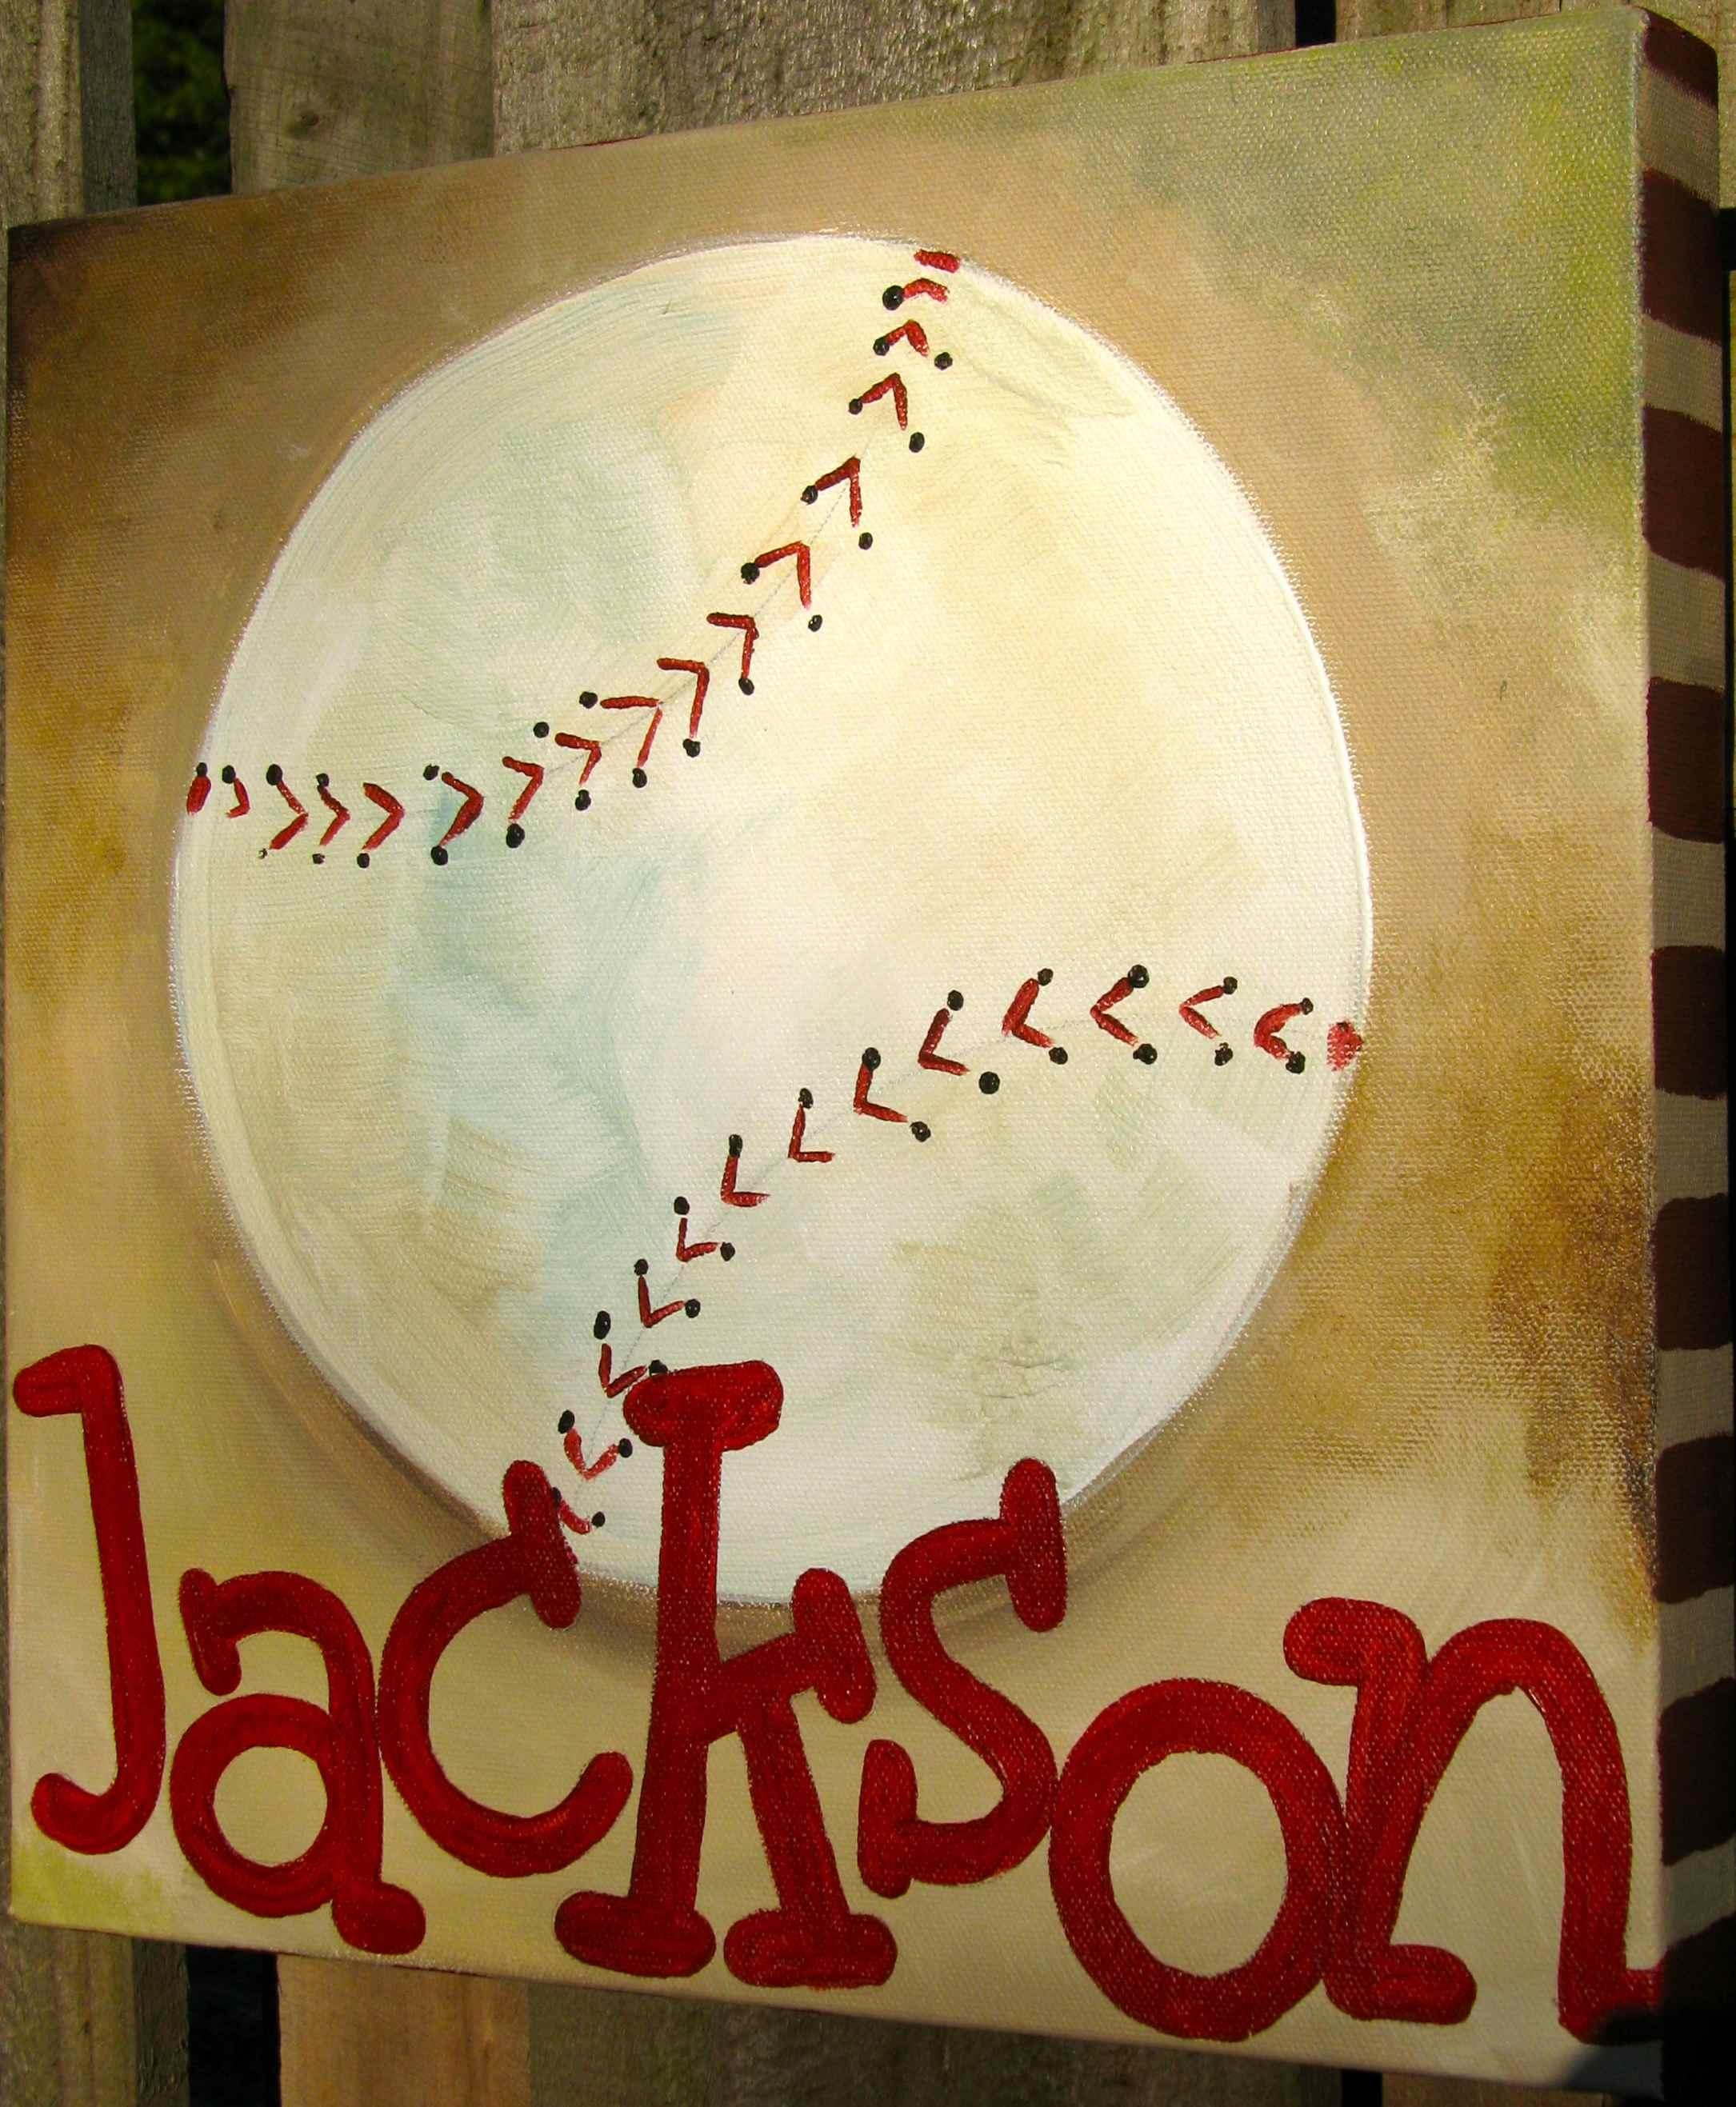 20 Best Collection of Vintage Baseball Wall Art | Wall Art Ideas